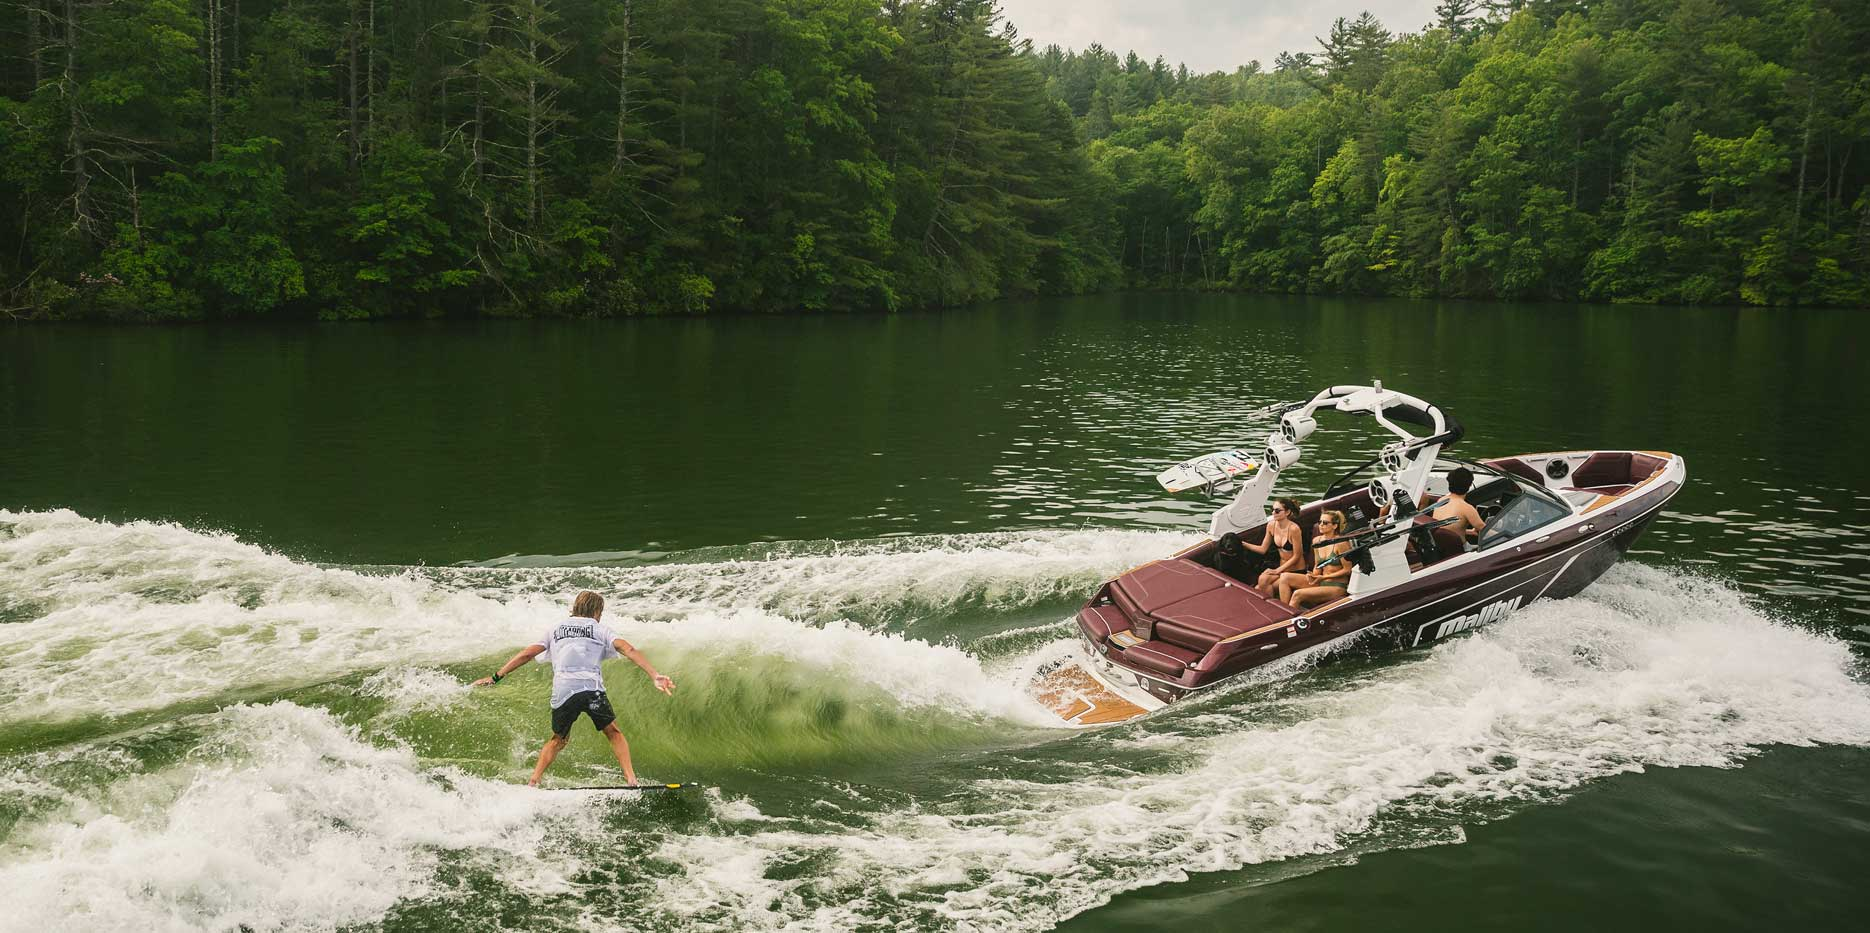 Wakesurfing behind the 22 LSV is a breeze with the Integrated Surf Platform.